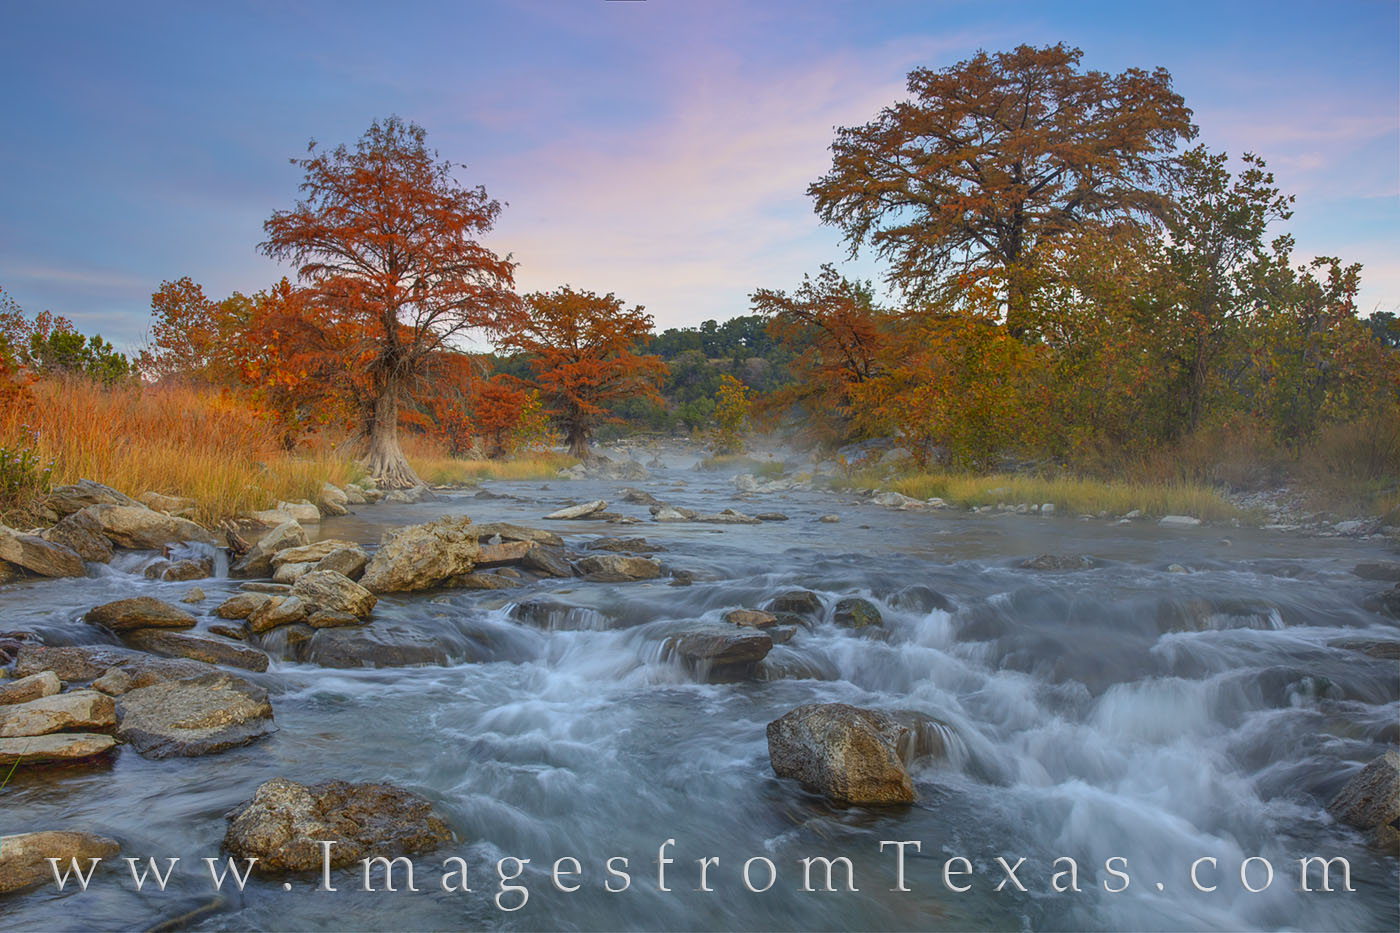 pedernales river, fall autumn, hill country, sunrsise, water, cypress, orange, november, fall color, photo